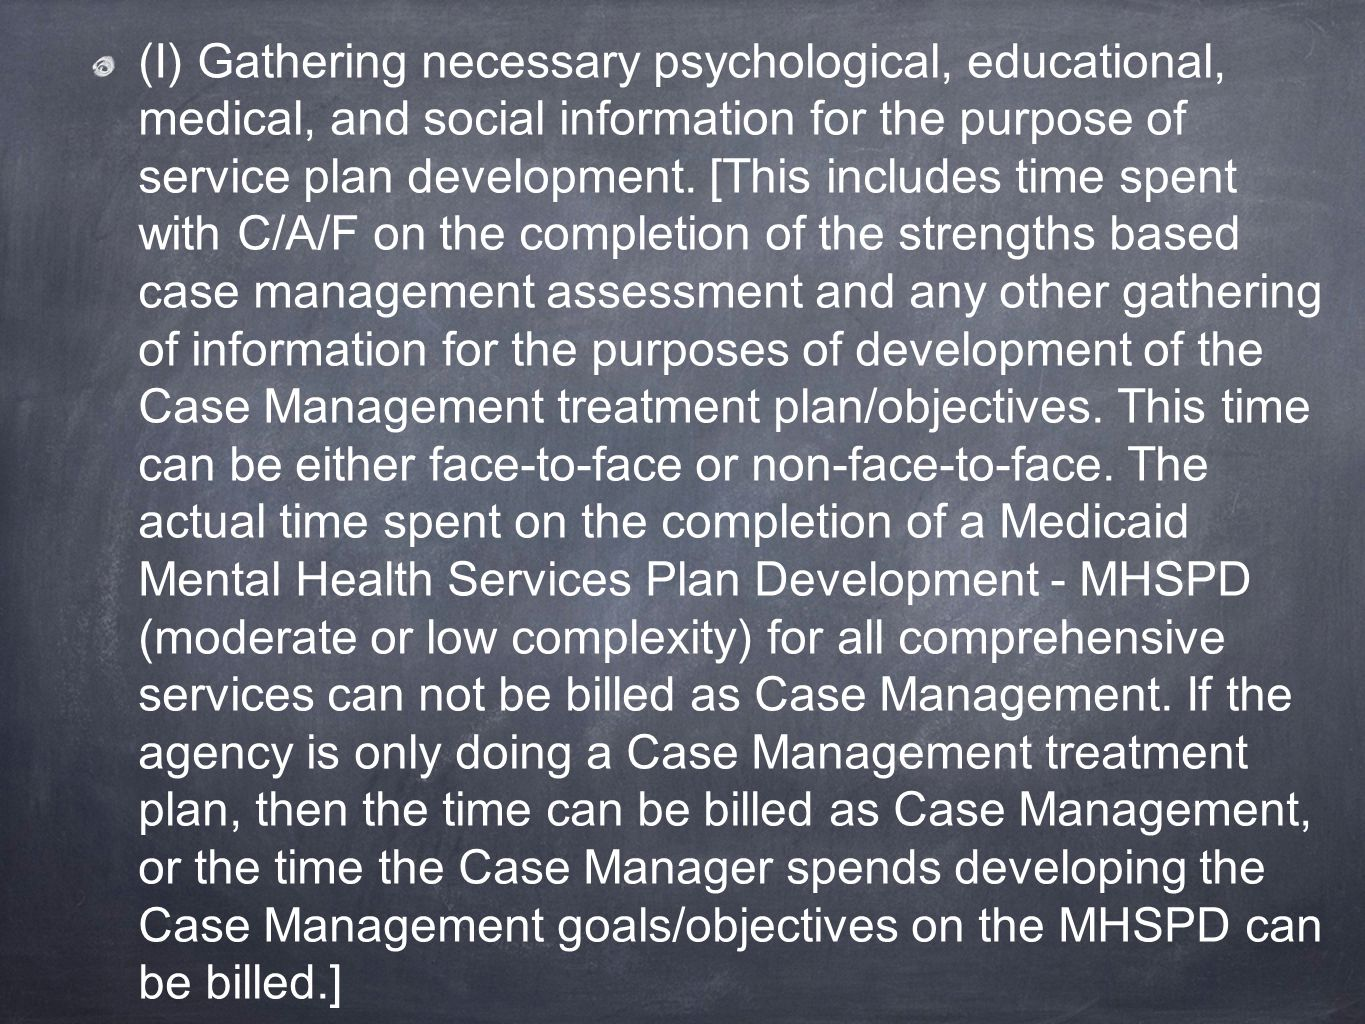 (I) Gathering necessary psychological, educational, medical, and social information for the purpose of service plan development.